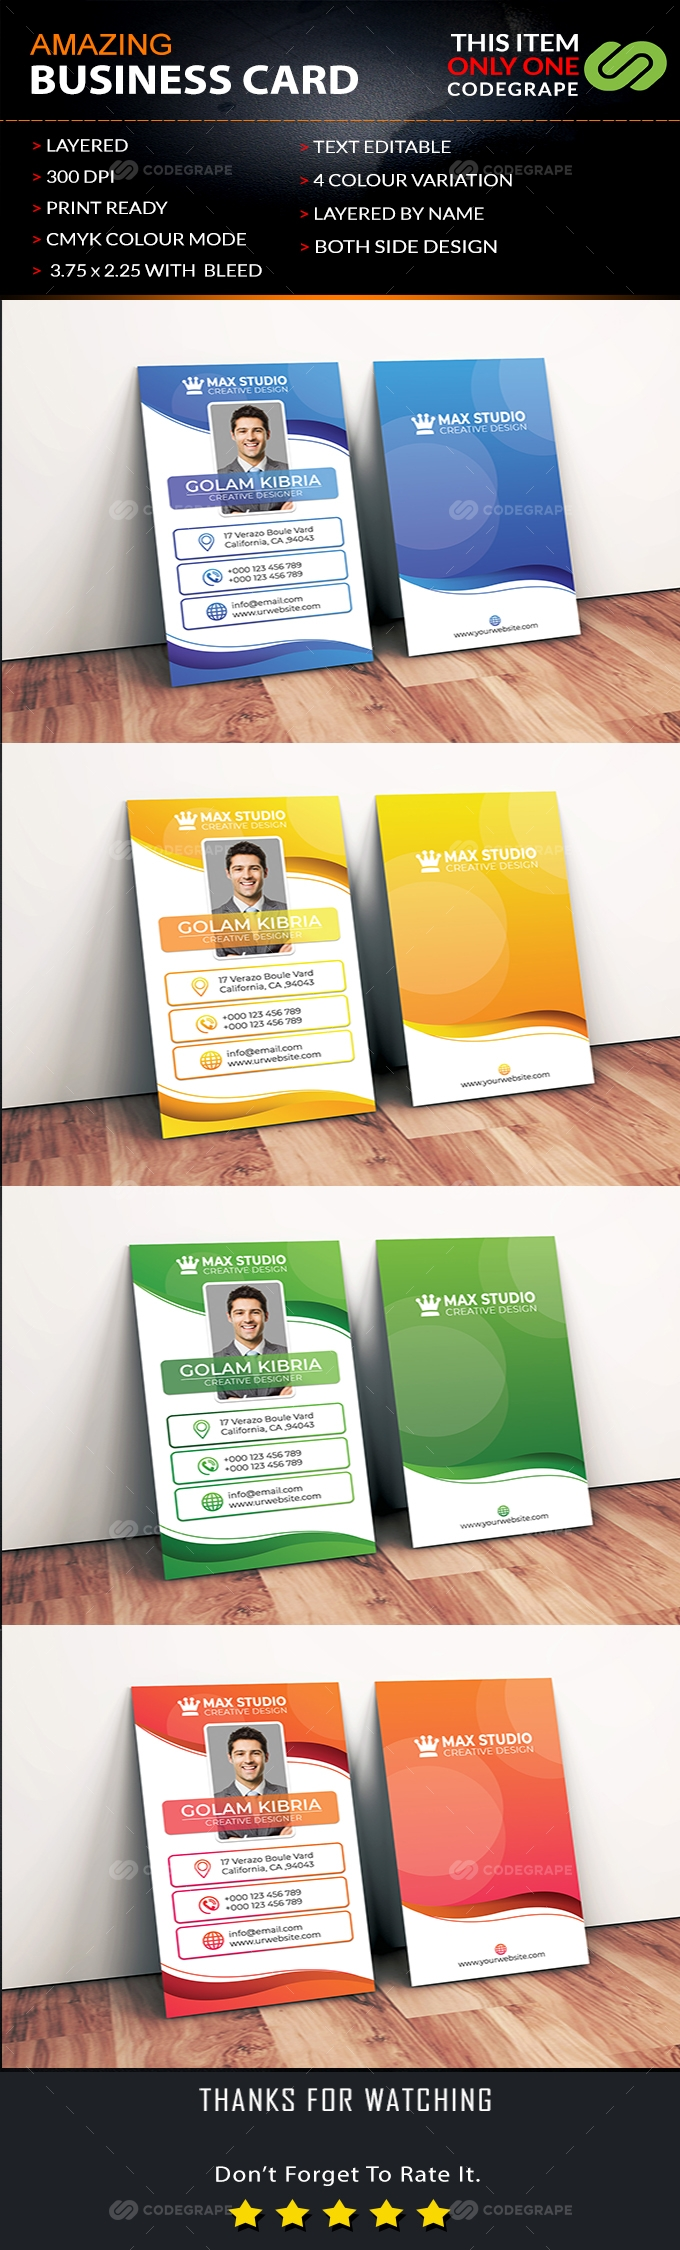 Amazing Vertical Business Card